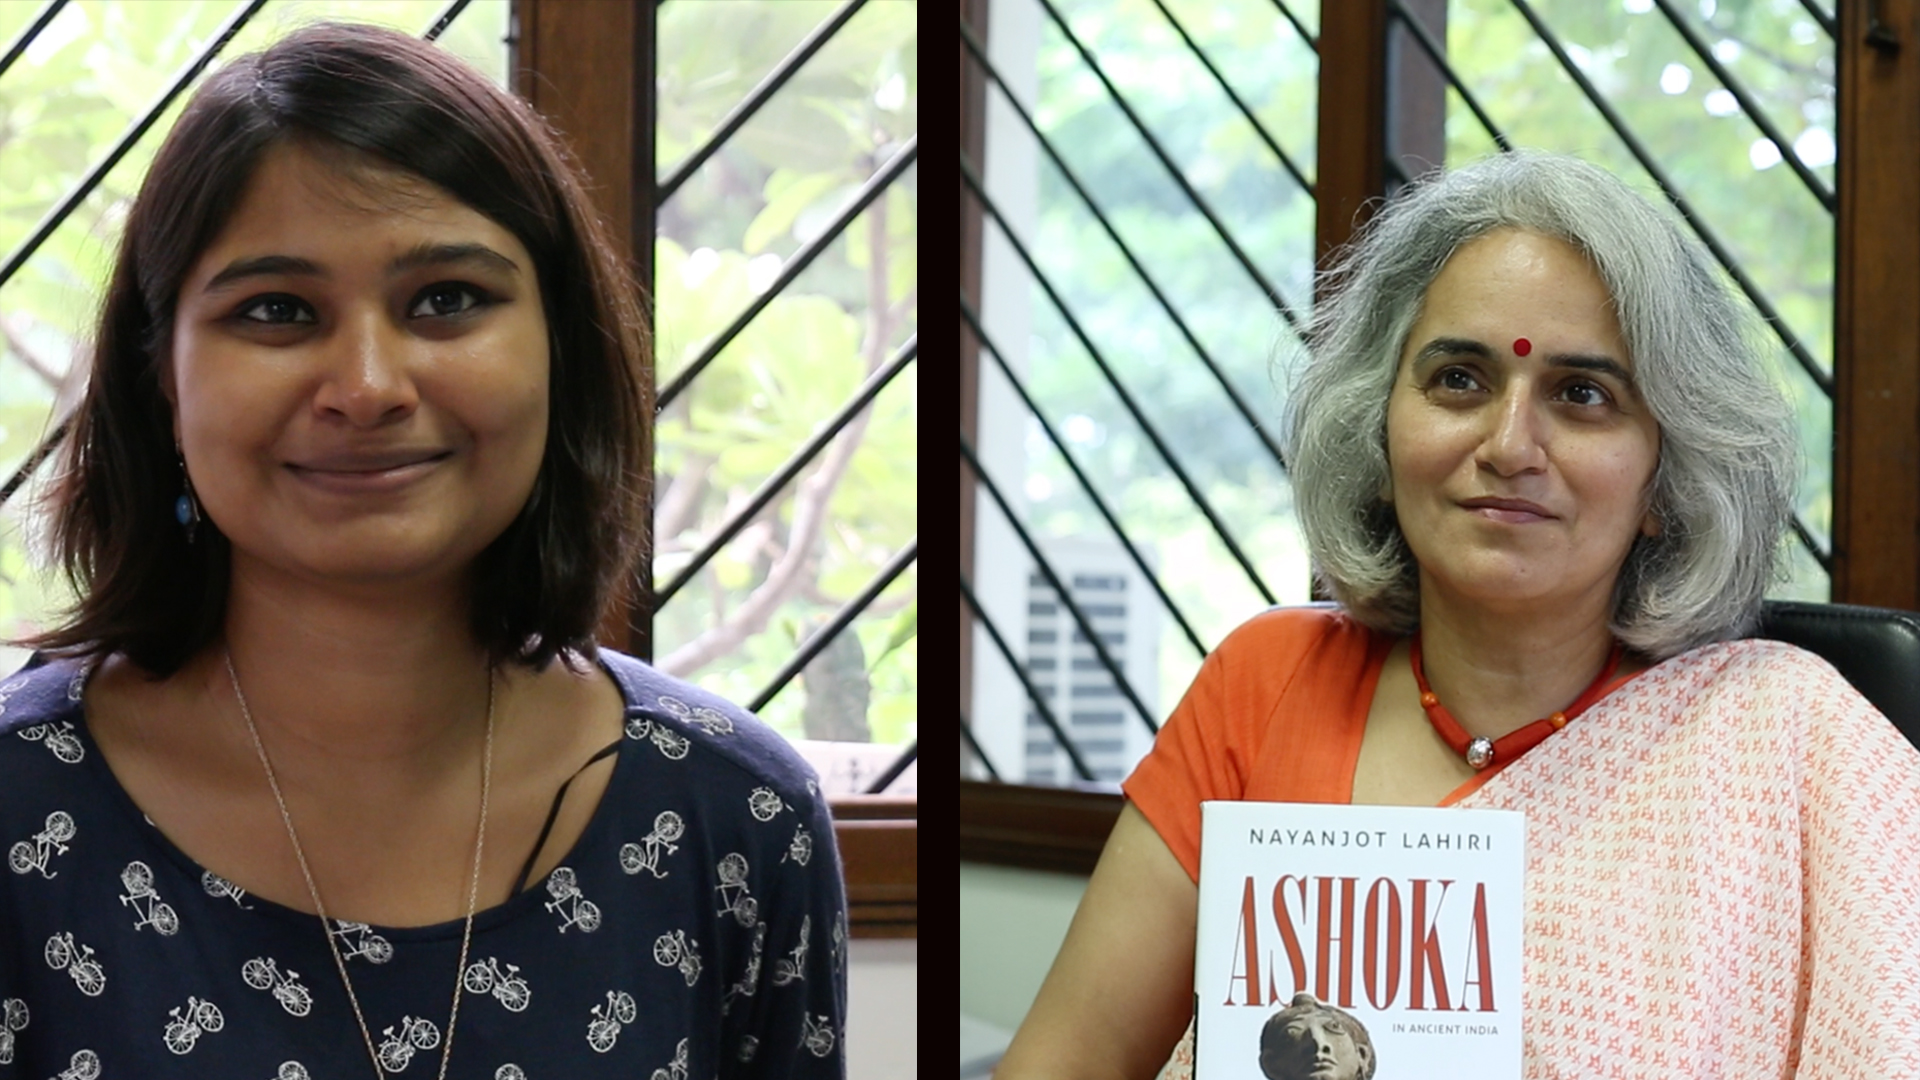 Watch: History Prize Winner Nayanjot Lahiri Talks About Her Book 'Ashoka in Ancient India'